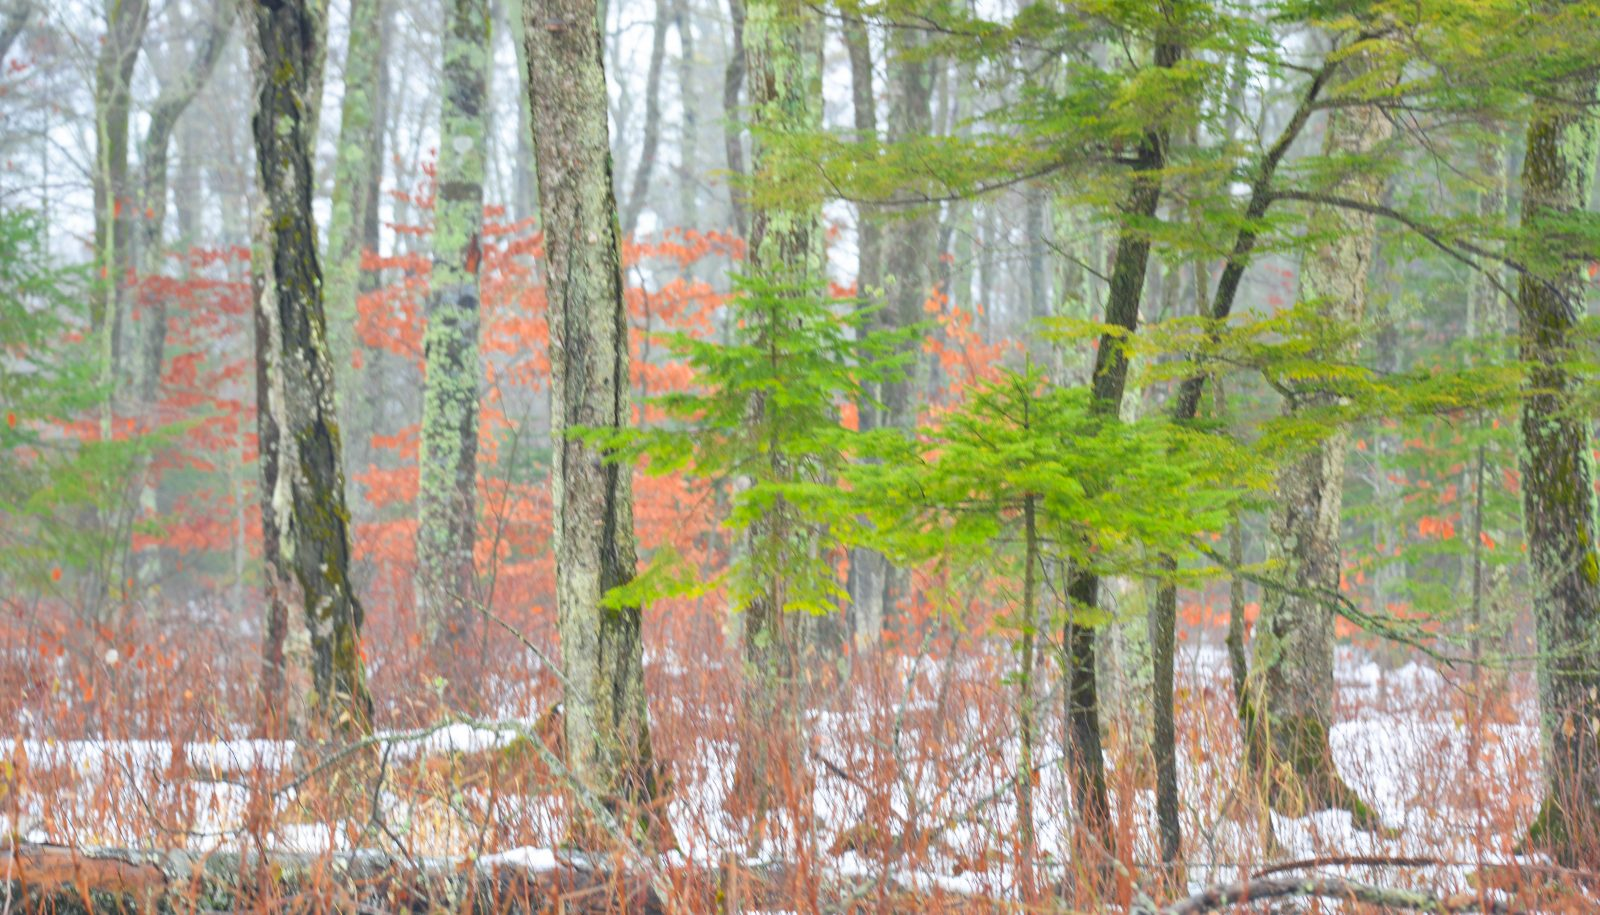 The Color of the Woods